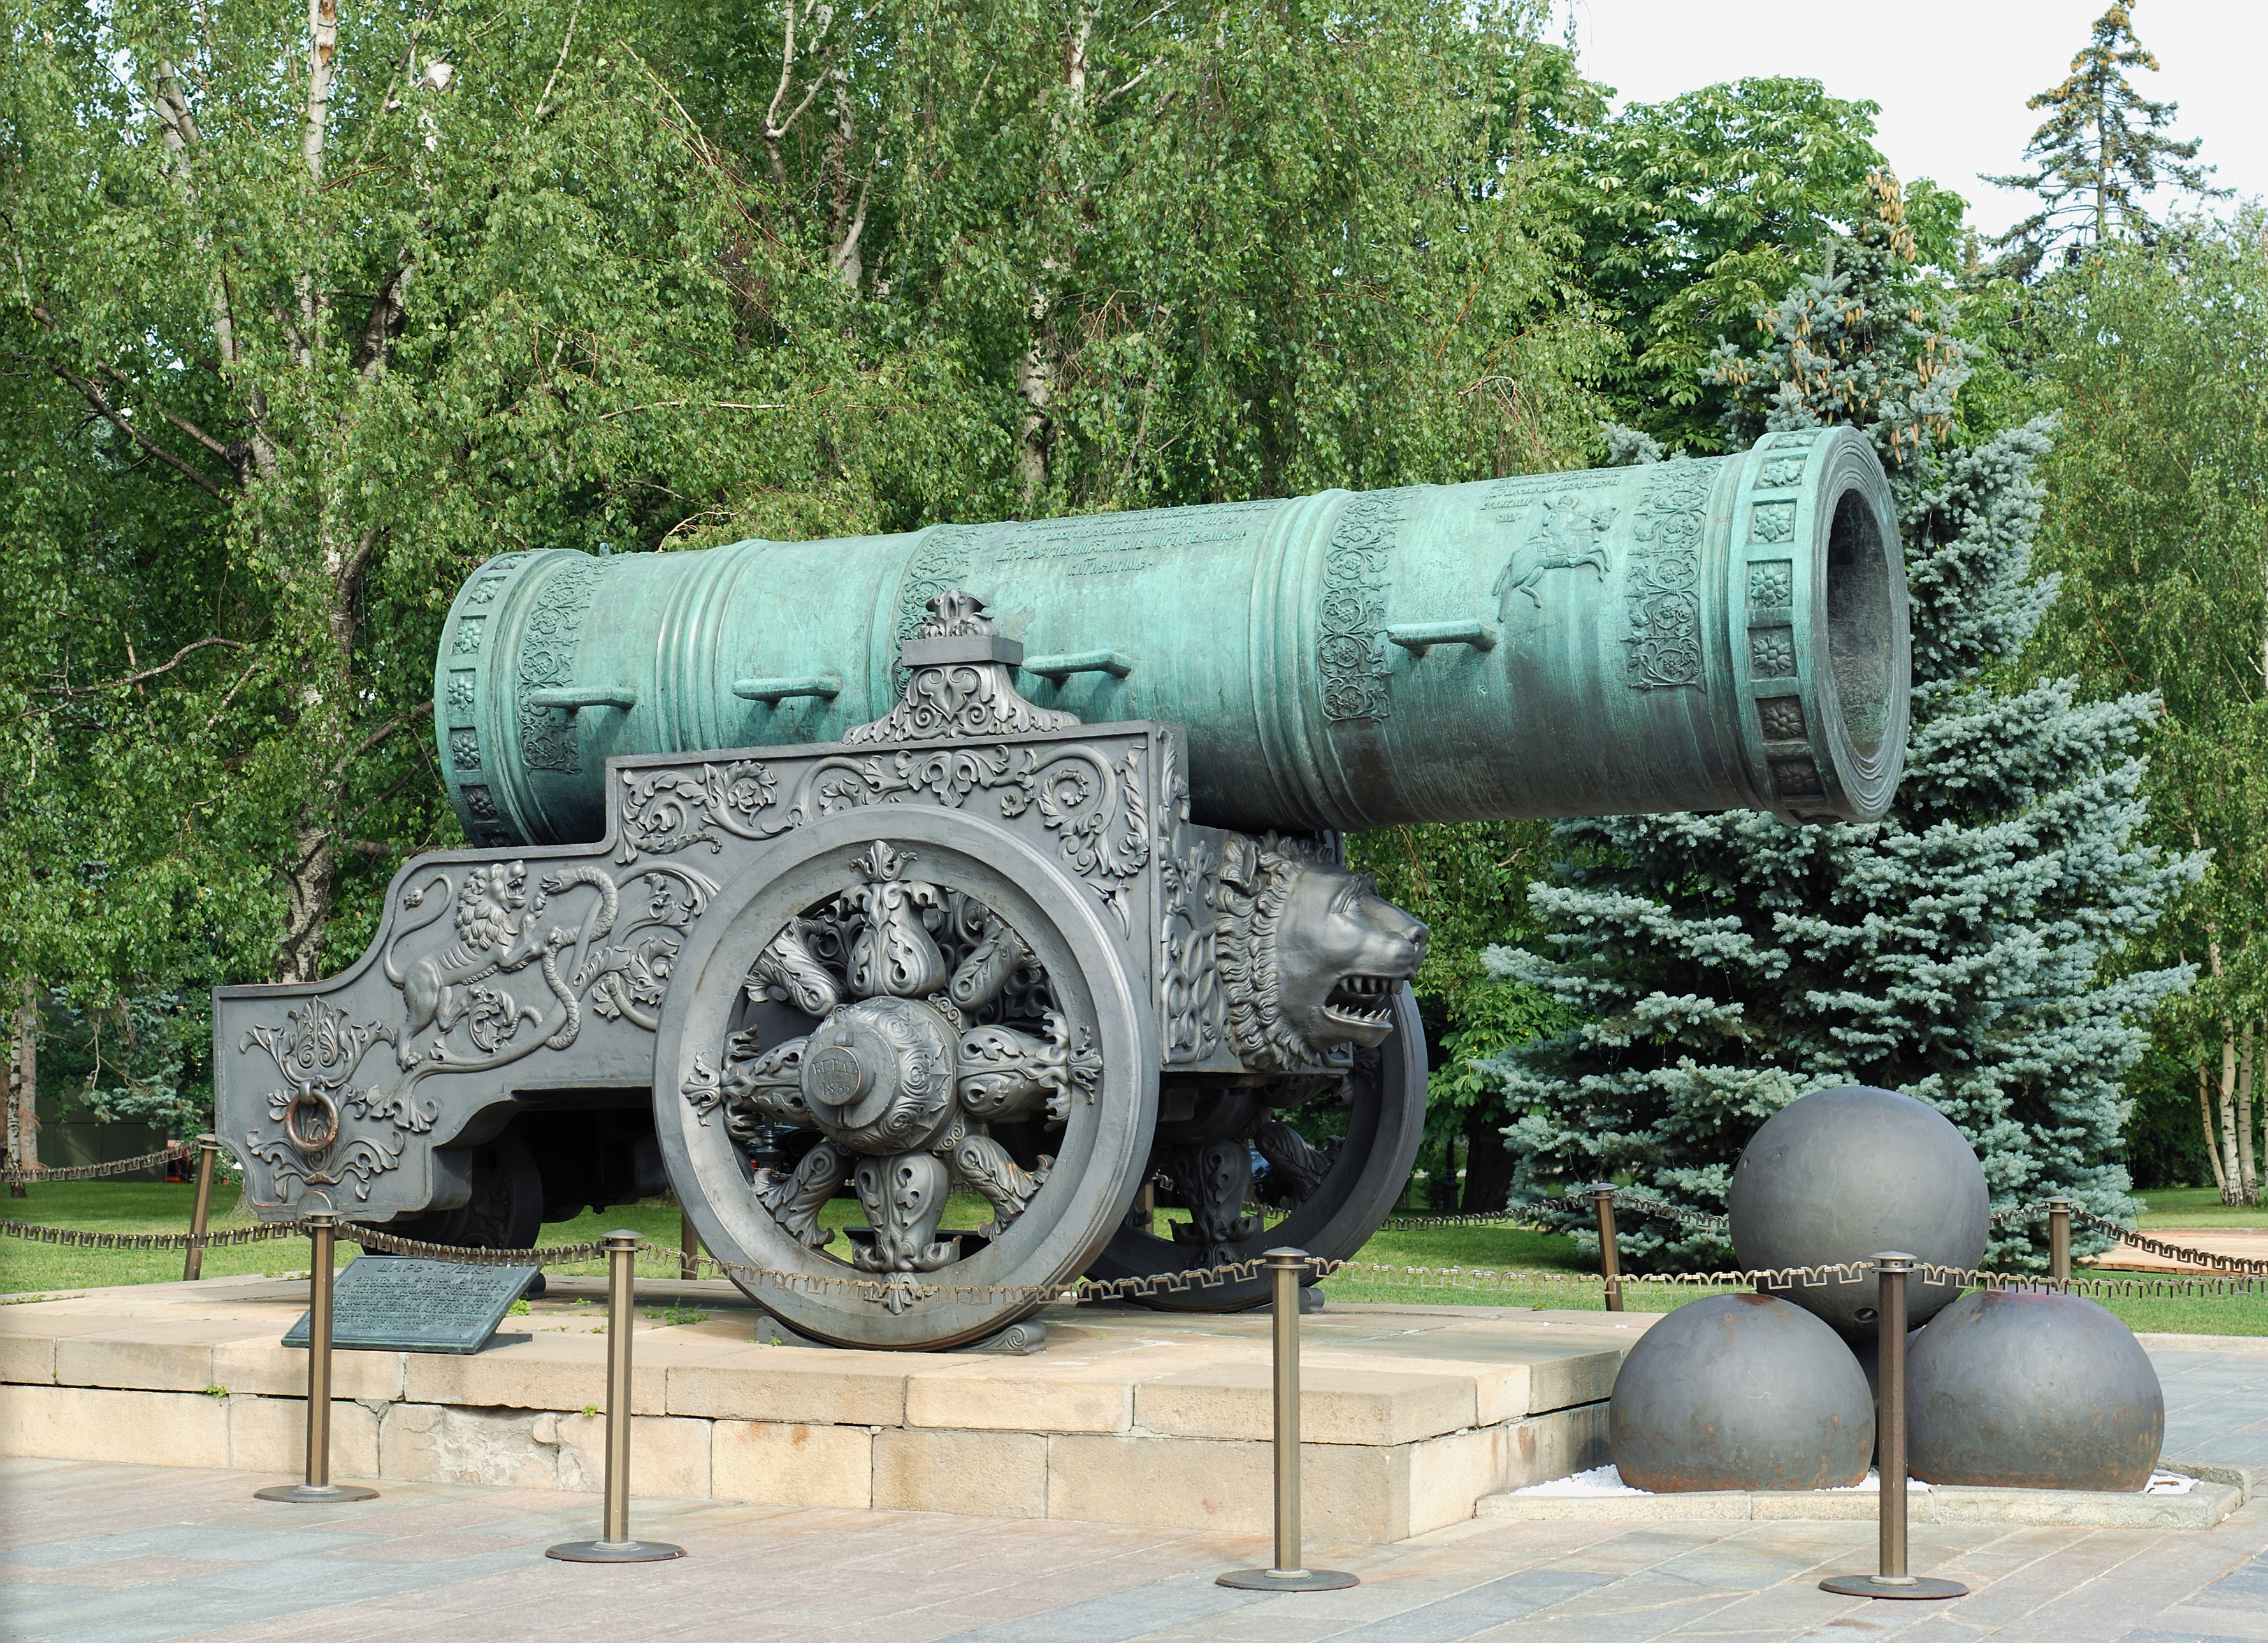 The Tsar Cannon at the Moscow Kremlin. Photo taken on July 13, 2011.